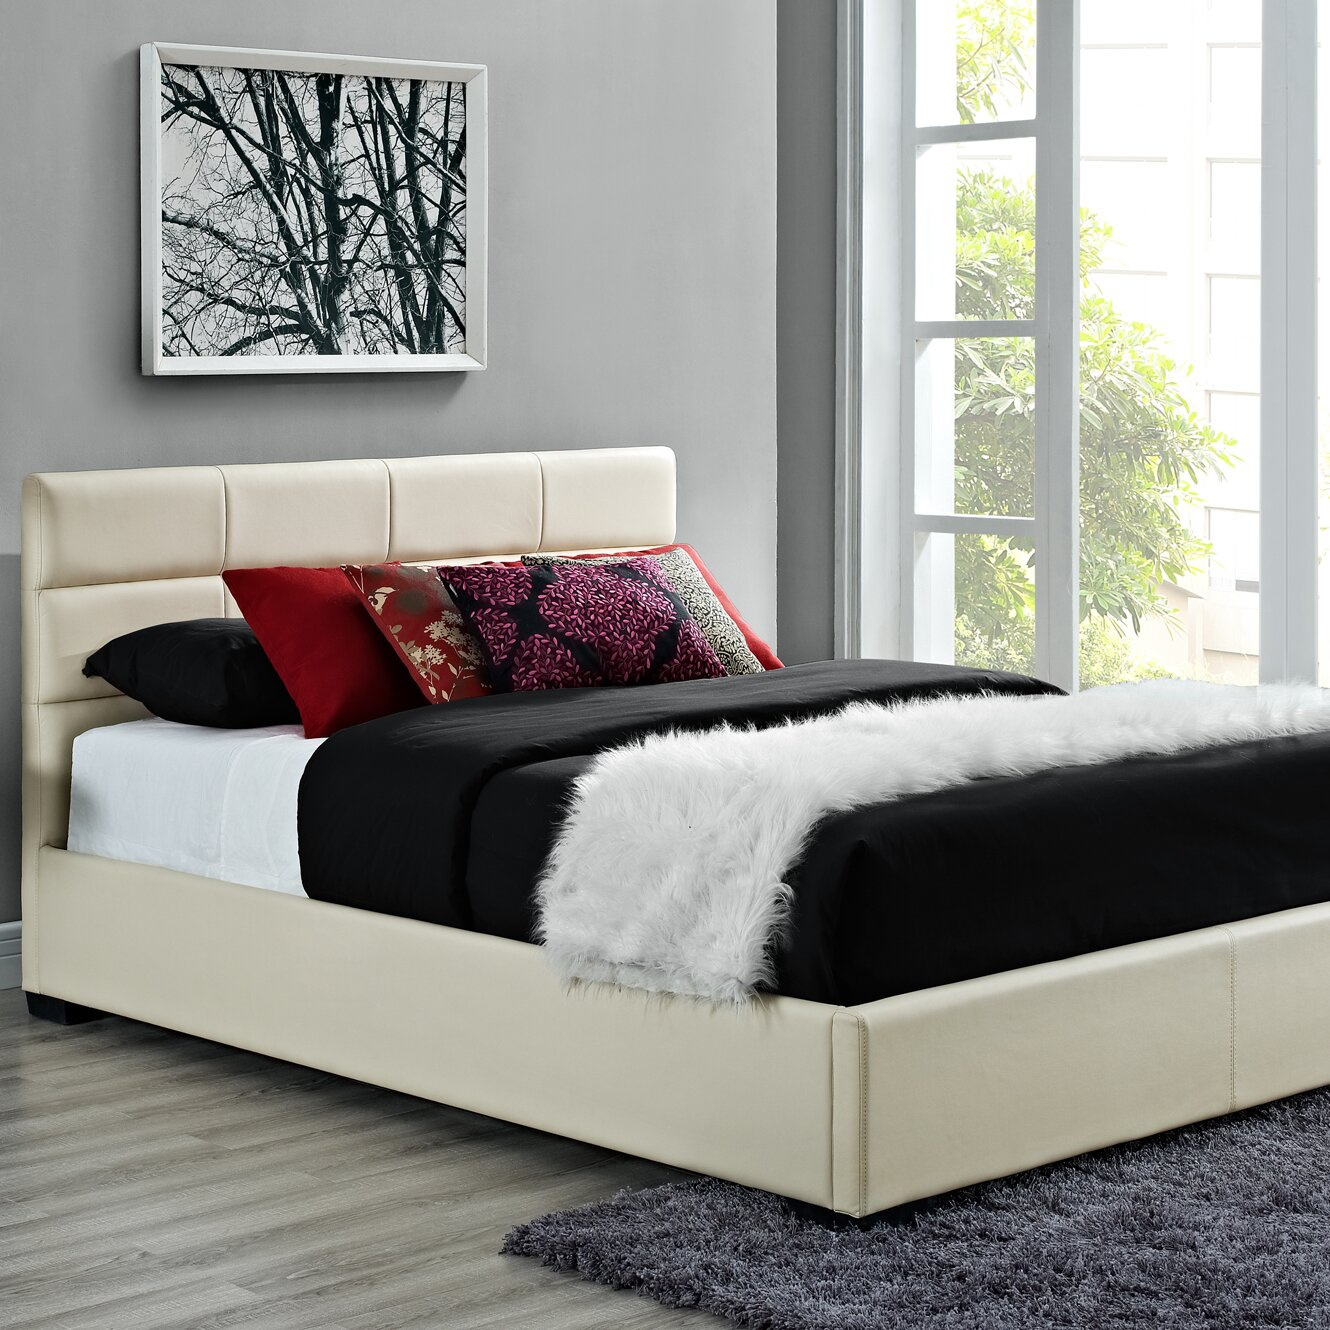 DHP Platform Bed DHP Platform Bed Reviews Wayfair  Dhp Black California  King Beds VesmaEducation com. King Dhp Sleigh Beds   s rk com